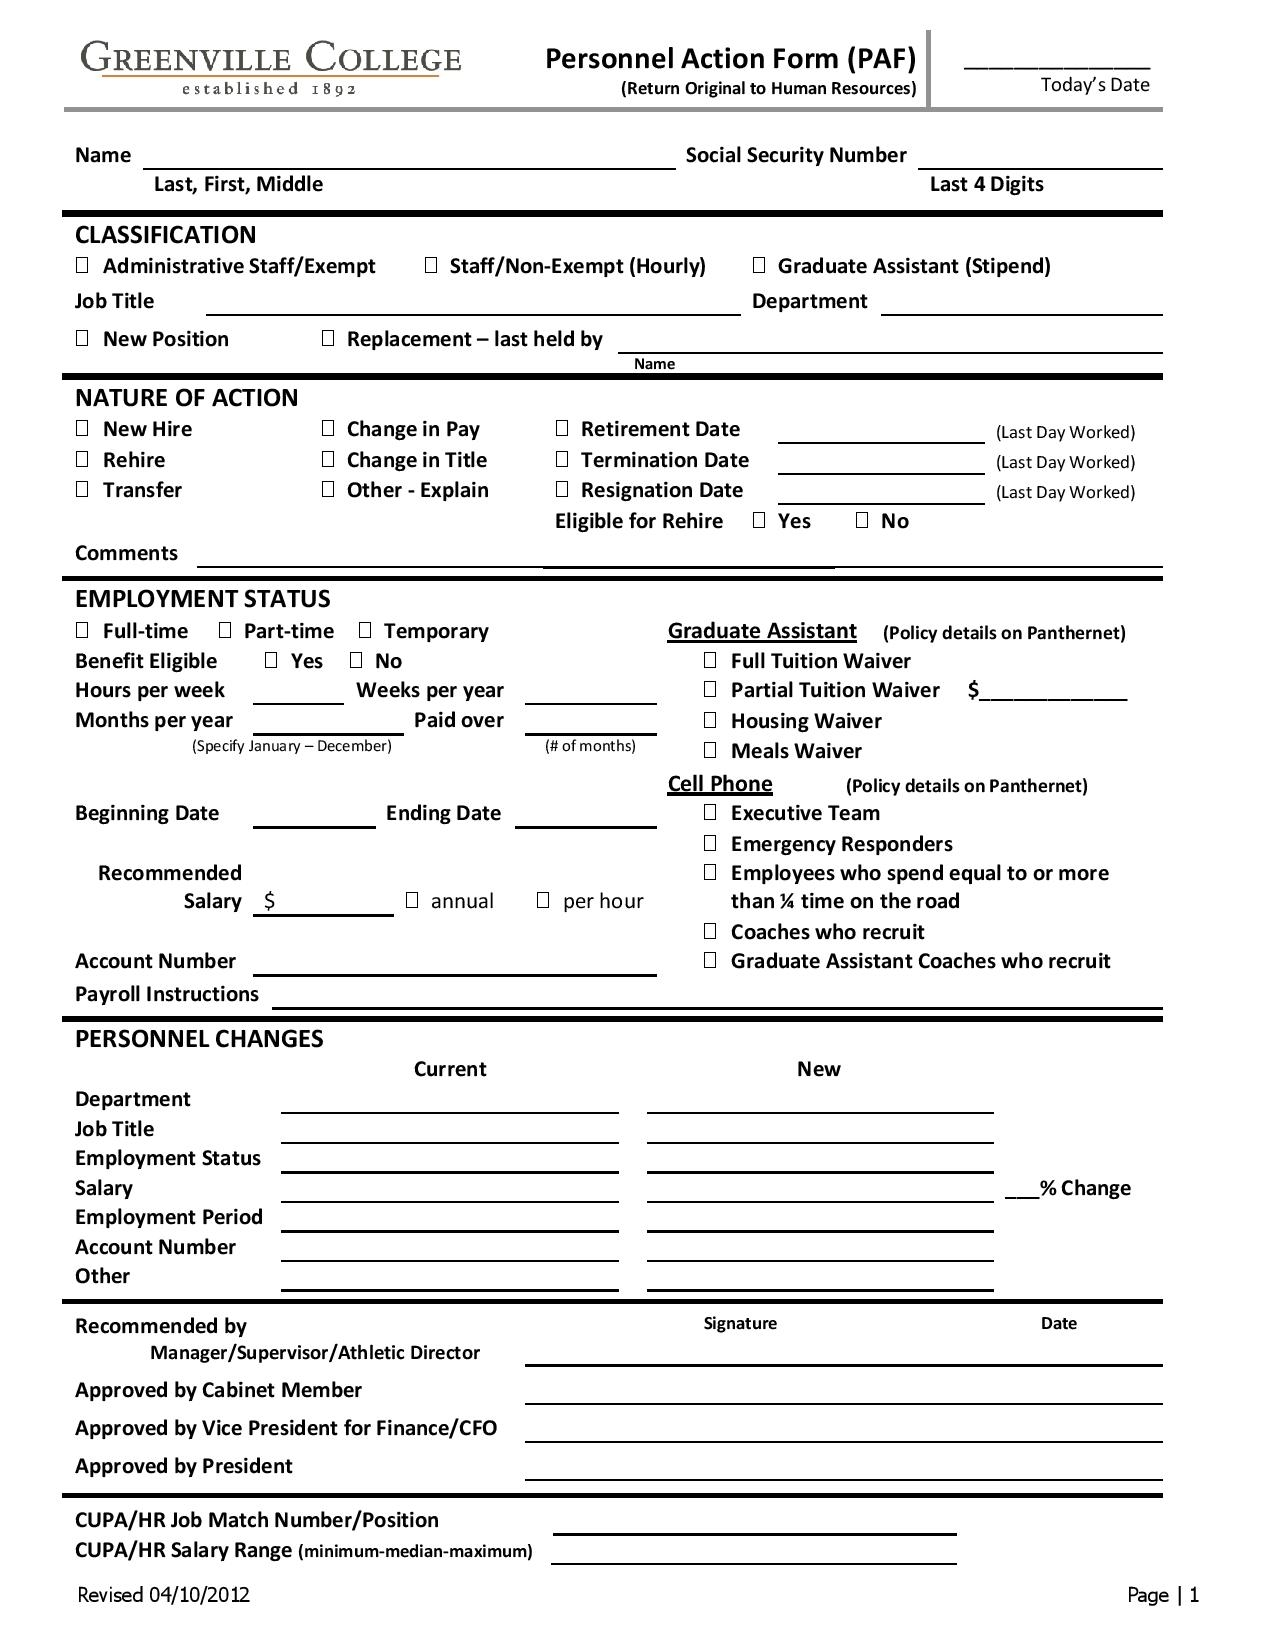 personnel action form for employment page 0011